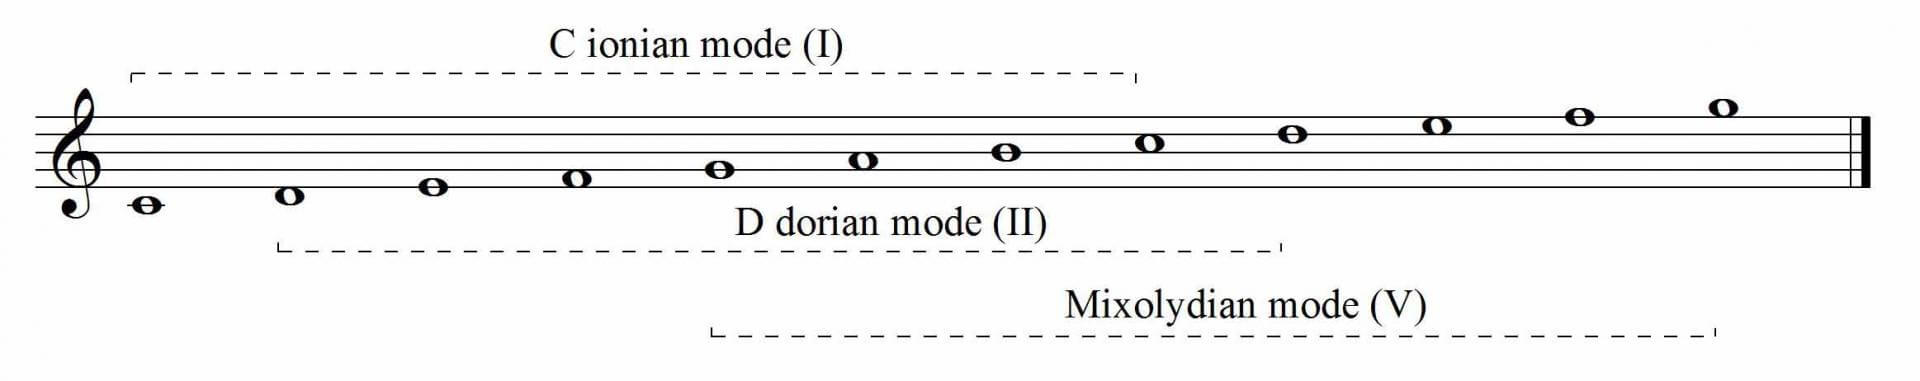 Modes of the II-V-I sequence